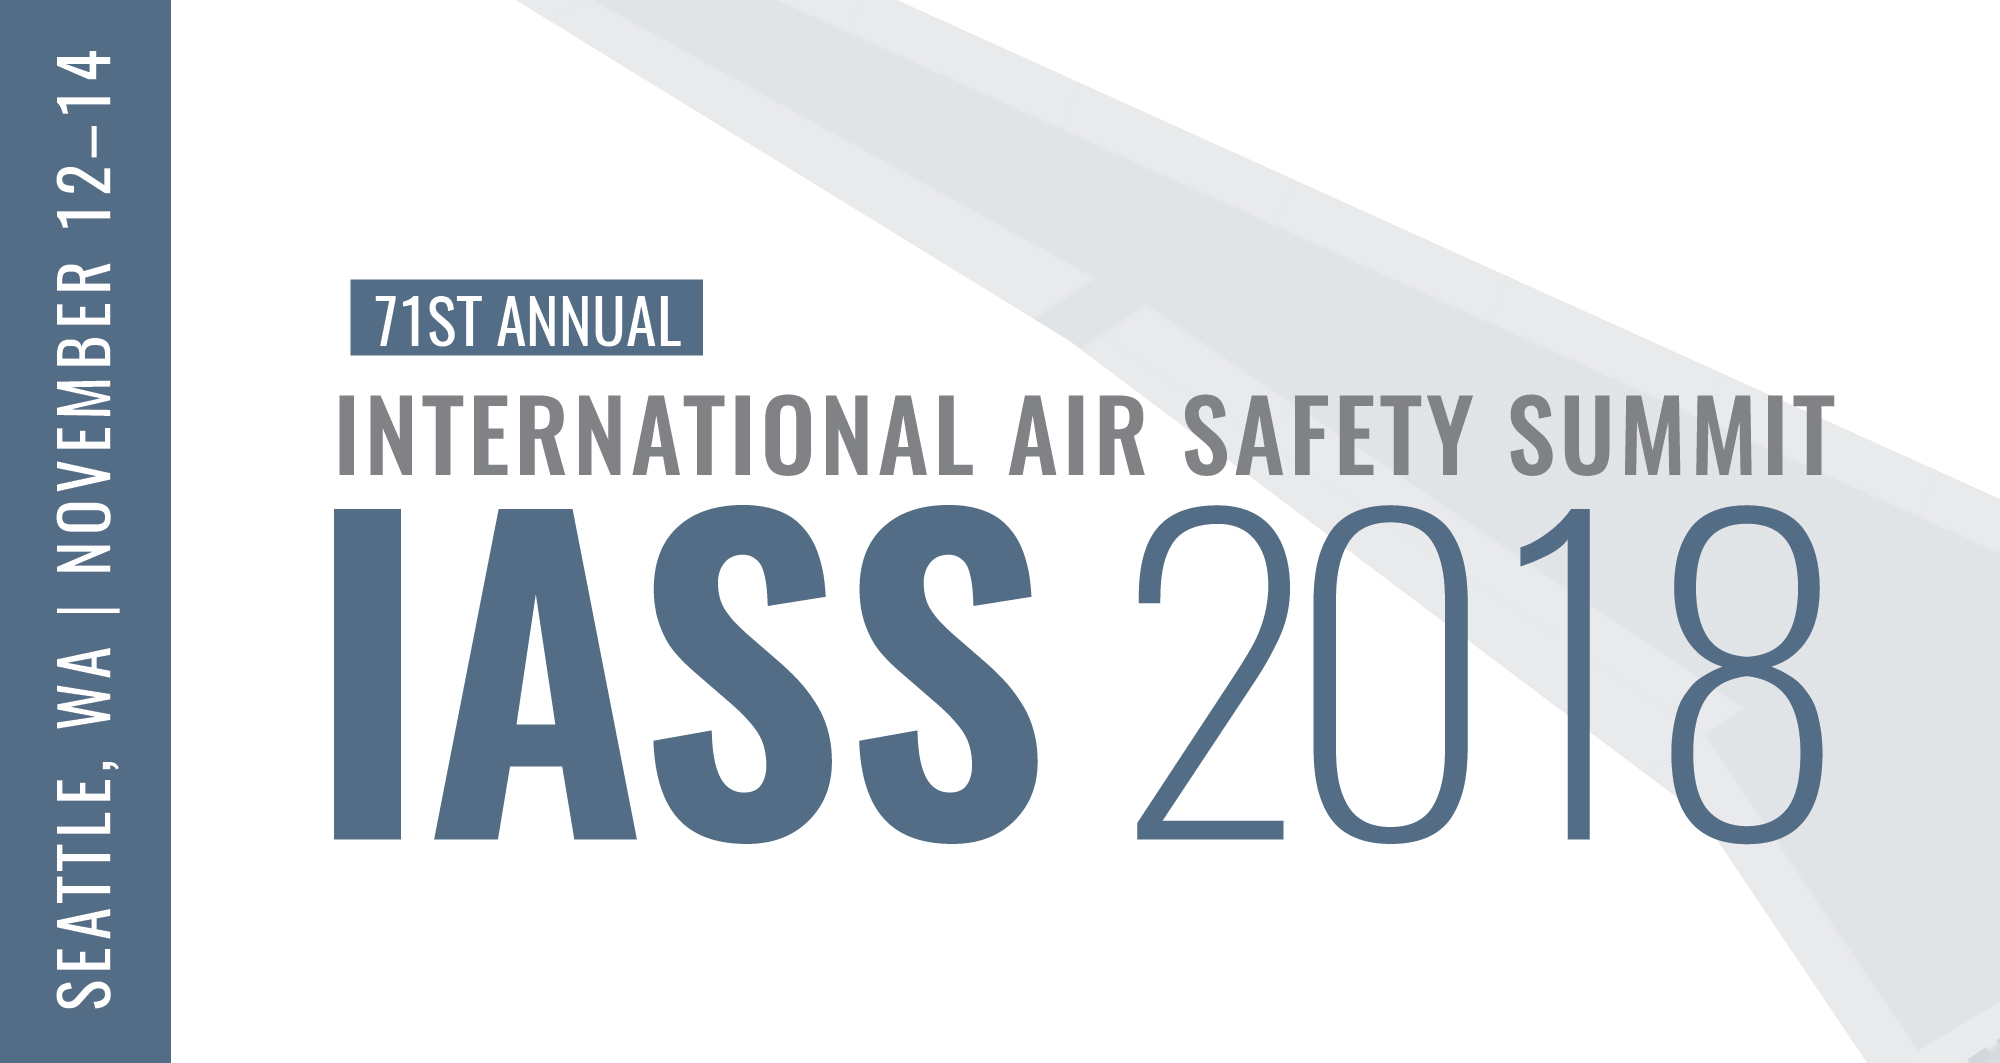 71st annual International Air Safety Summit